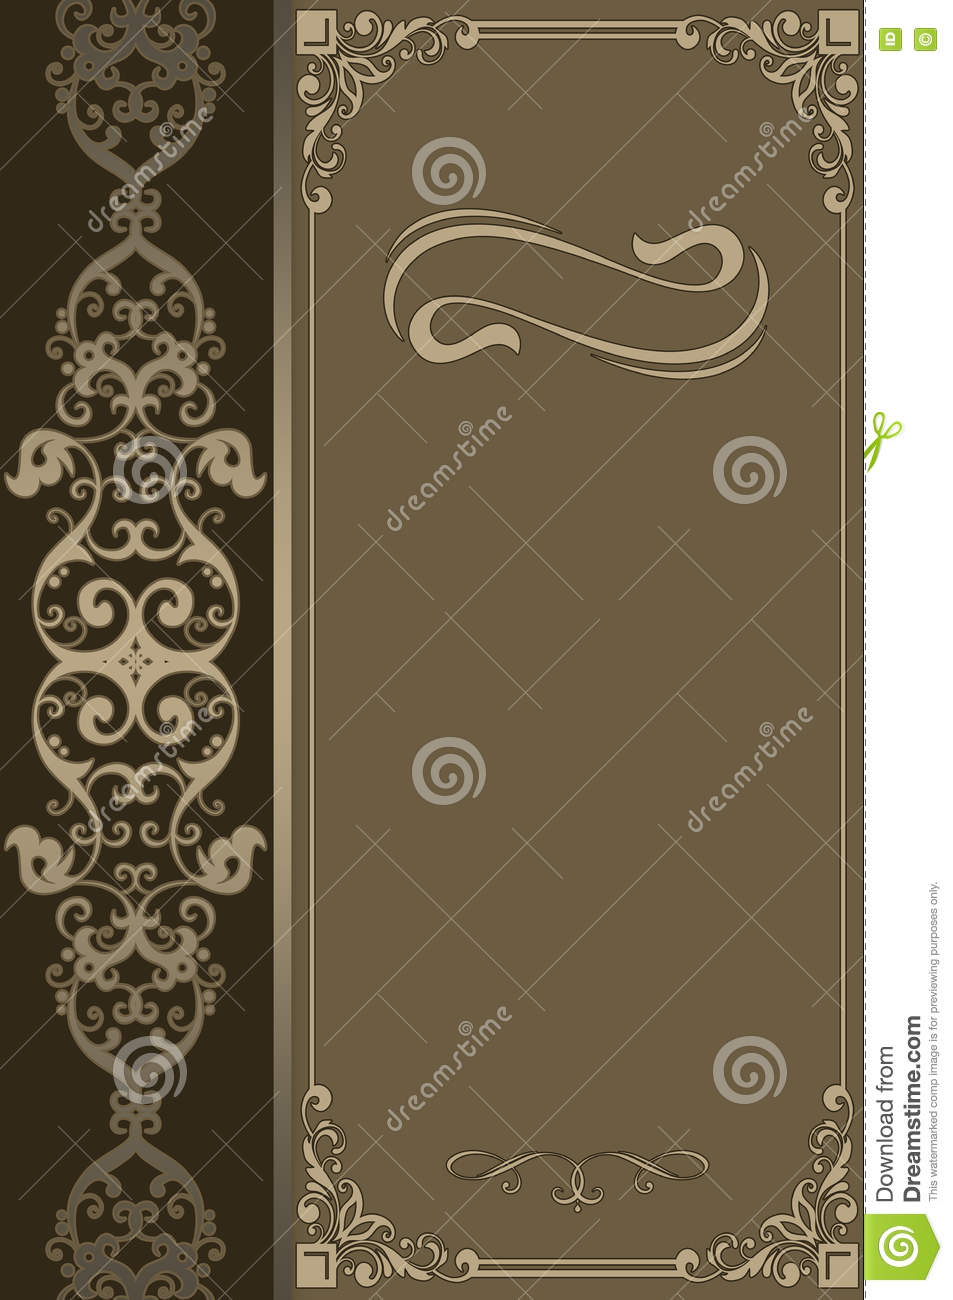 Old Fashioned Book Cover Design ~ Decorative background with vintage border and ornament